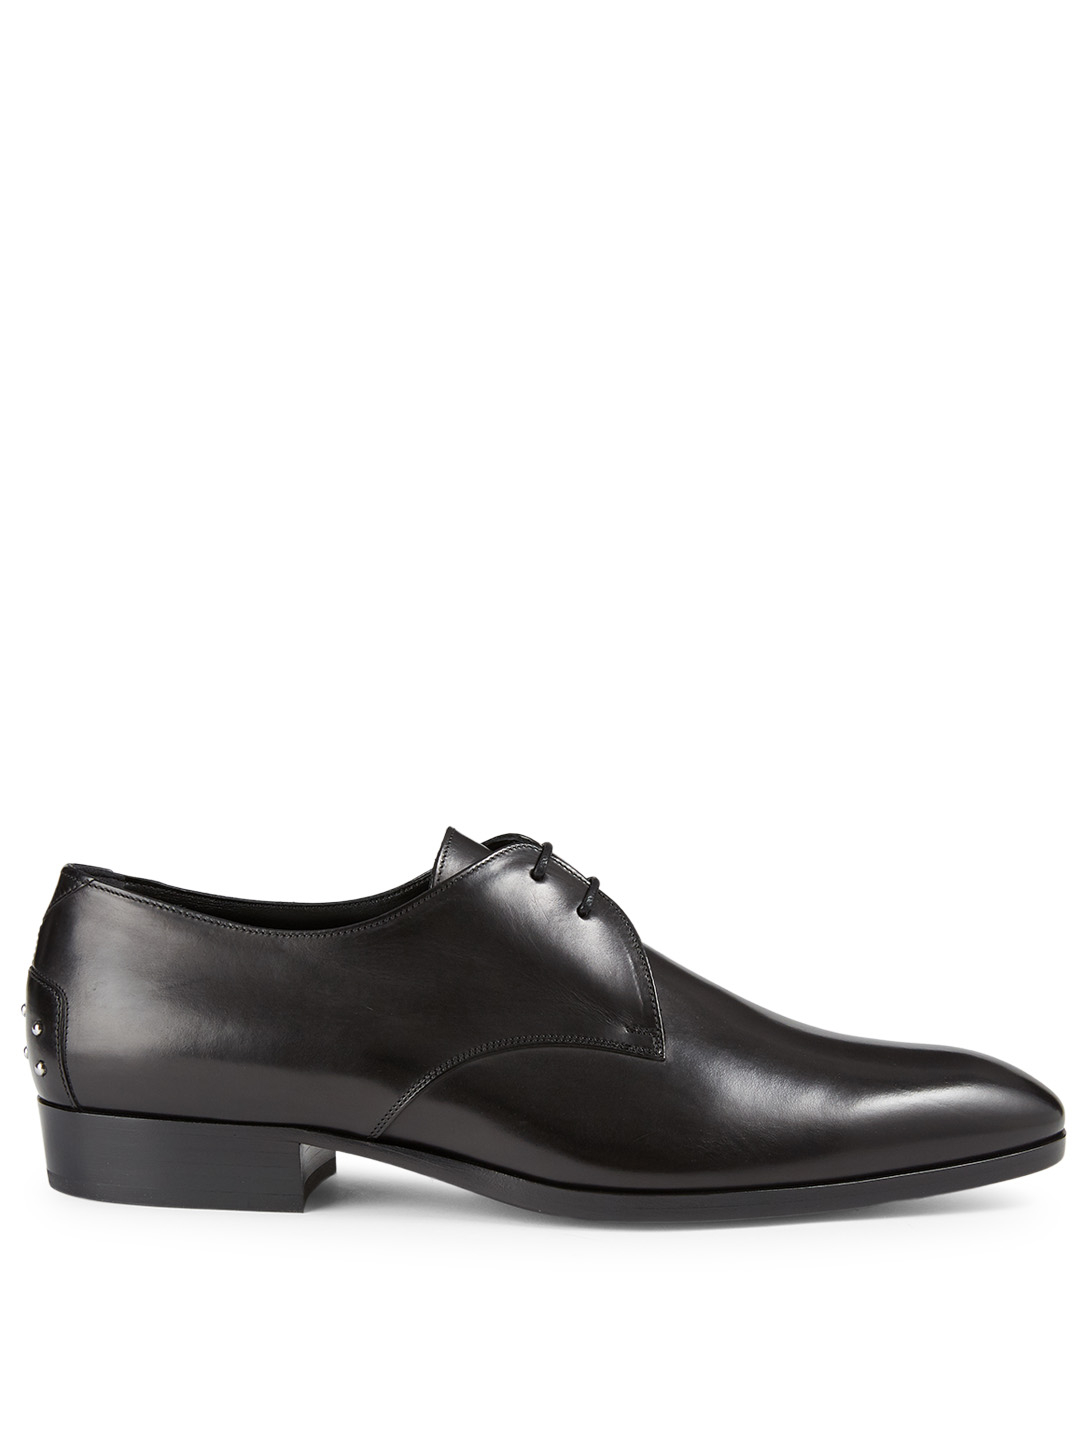 SAINT LAURENT Wyatt Leather Derby Shoes Men's Black